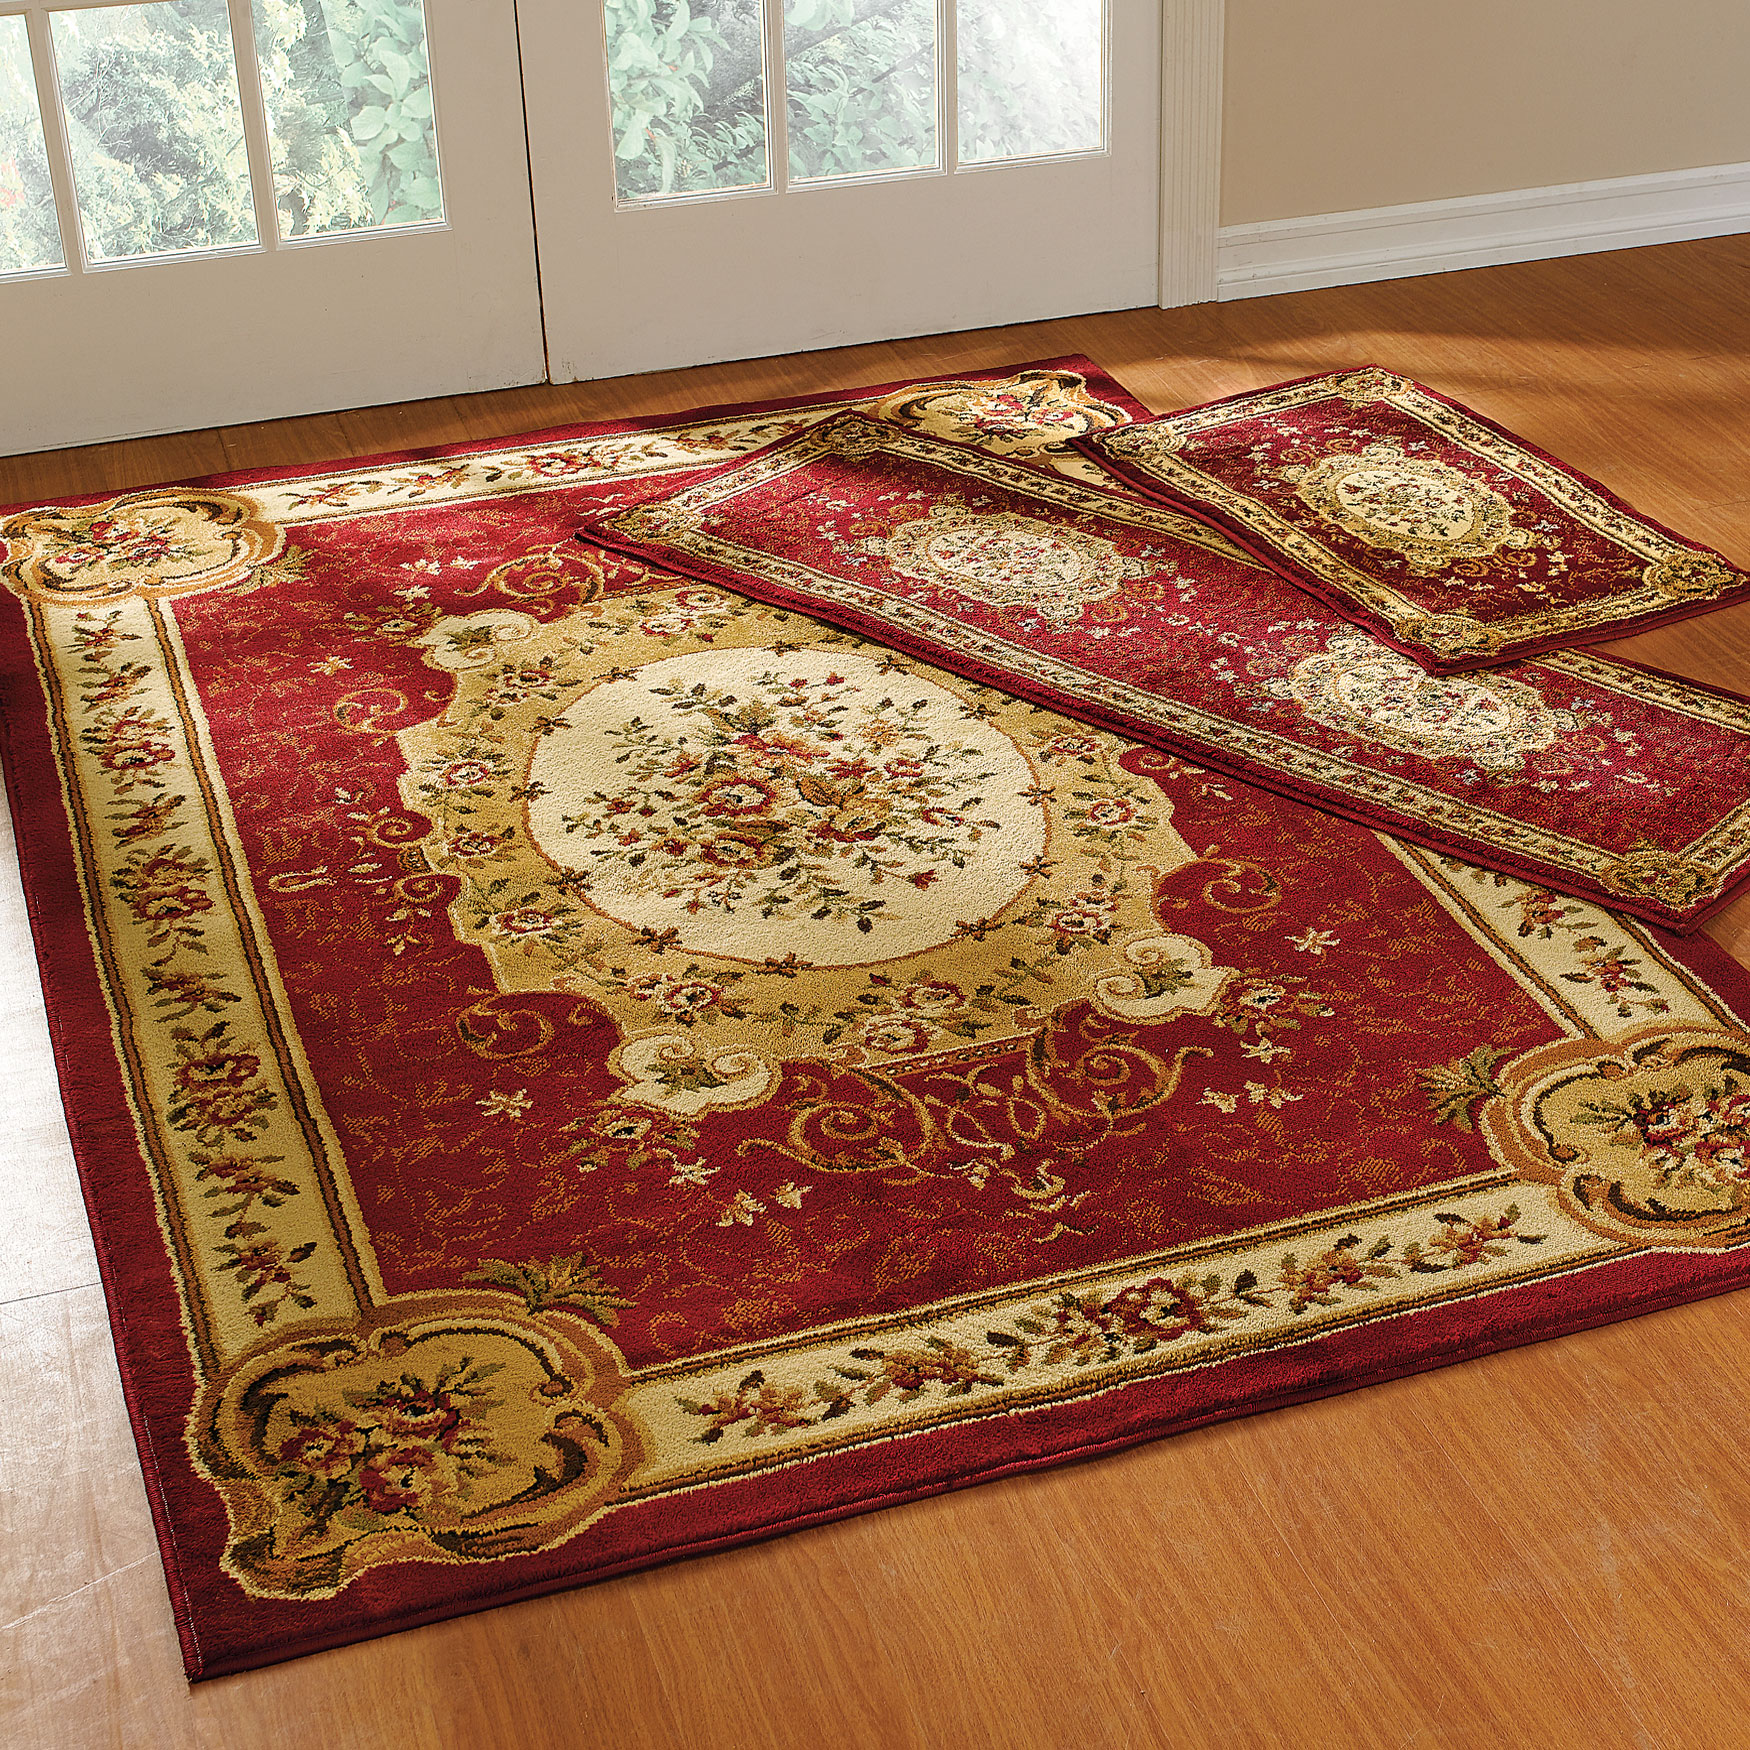 Floral 3-Pc. Rug Set with Runner,